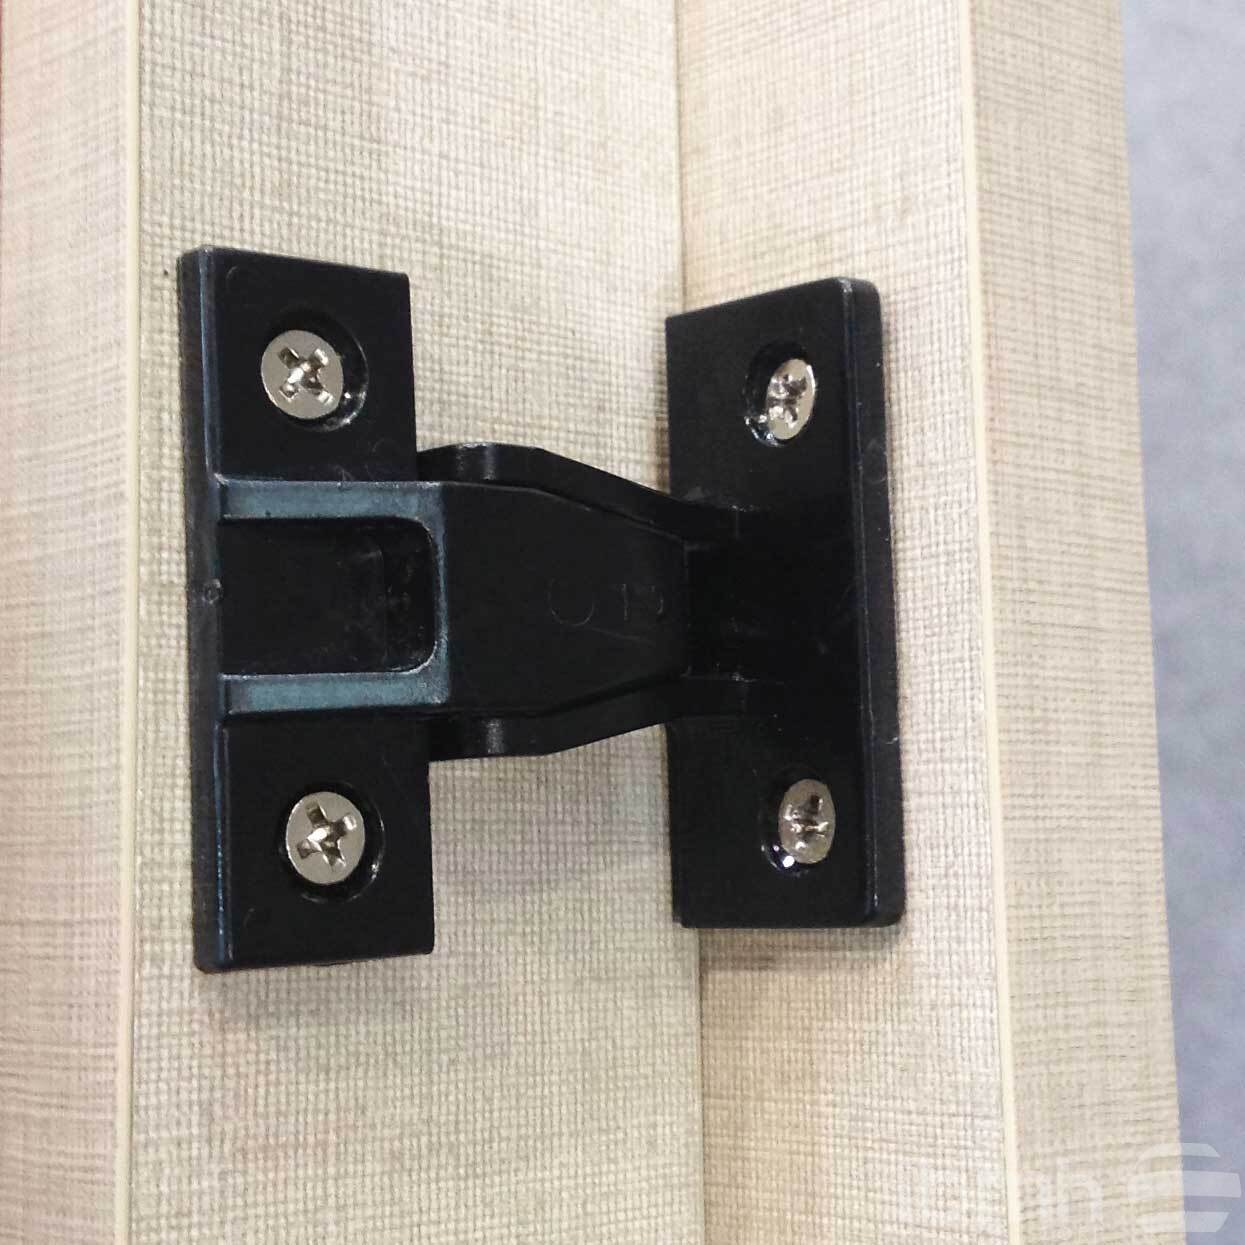 IMPORT FROM CHINA: China Furniture Hardware China Cabinet Hardware Wholesale Furniture Fittings from China Wholesale Cabinet Fittings from China China Wood Cabinet Fittings China Wood Furniture Hardware Wall Panel System KEKU and Hidden Connection Systems Keku Suspension Fittings Set Keku Frame Component Fast Mount Fittings Fastmount Furniture Hardware Furniture Fittings​ Furniture Components Parts of Furniture Furniture Connections Fittings Connectors Fittings  Bolt Connector  Cam  Fastness Fitting  Connecting  Connector Fitting  Connection Screw  Confirmat Screw  Special Connections  Special Joints  Special Unions  Fastener